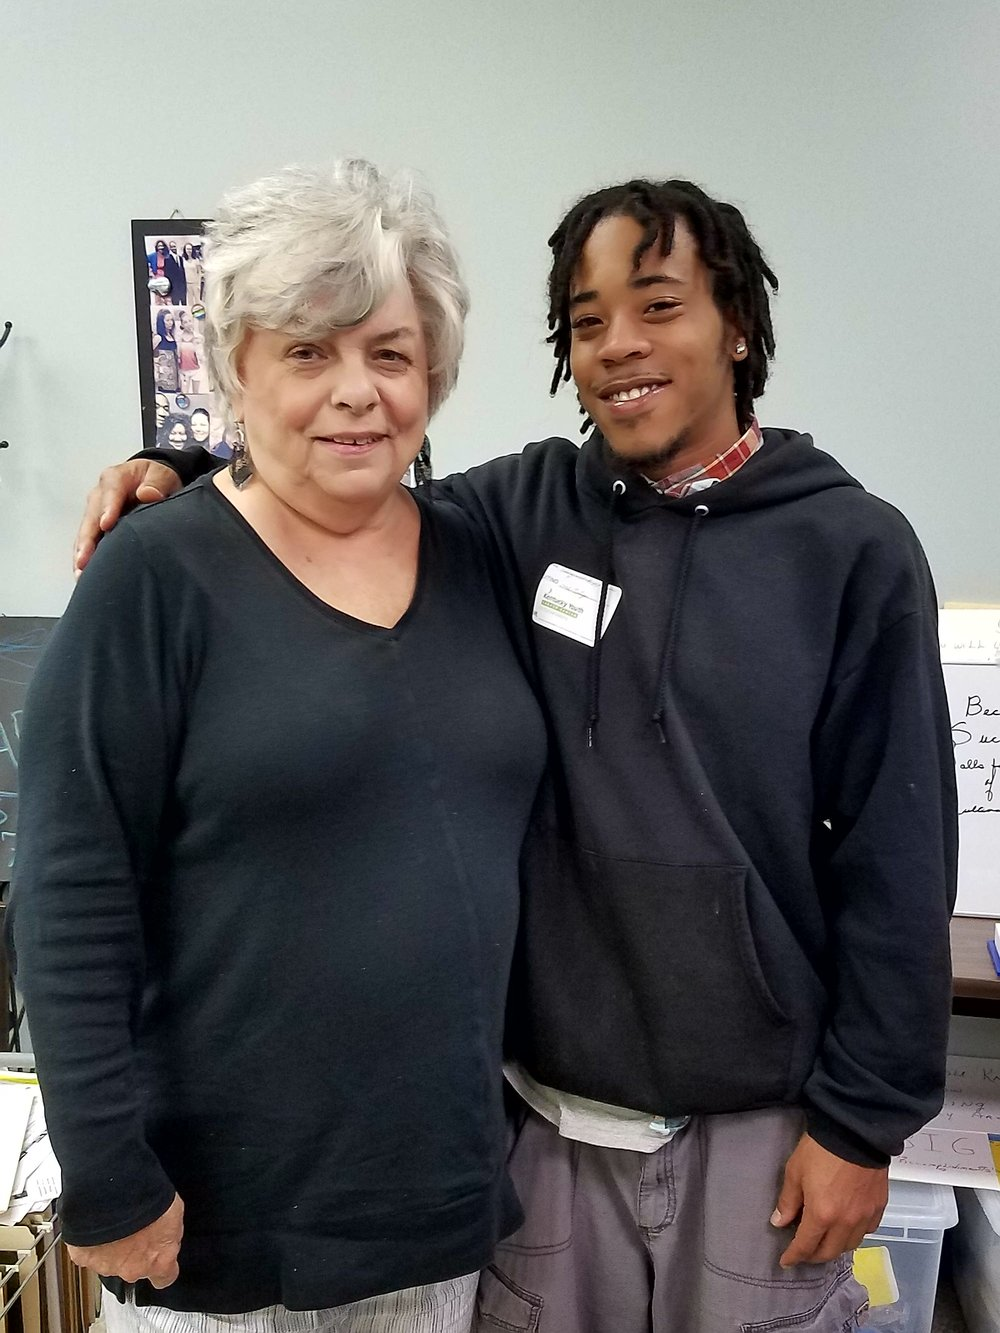 - Career planner Virginia Dever & KYCC student Shaquille Reed